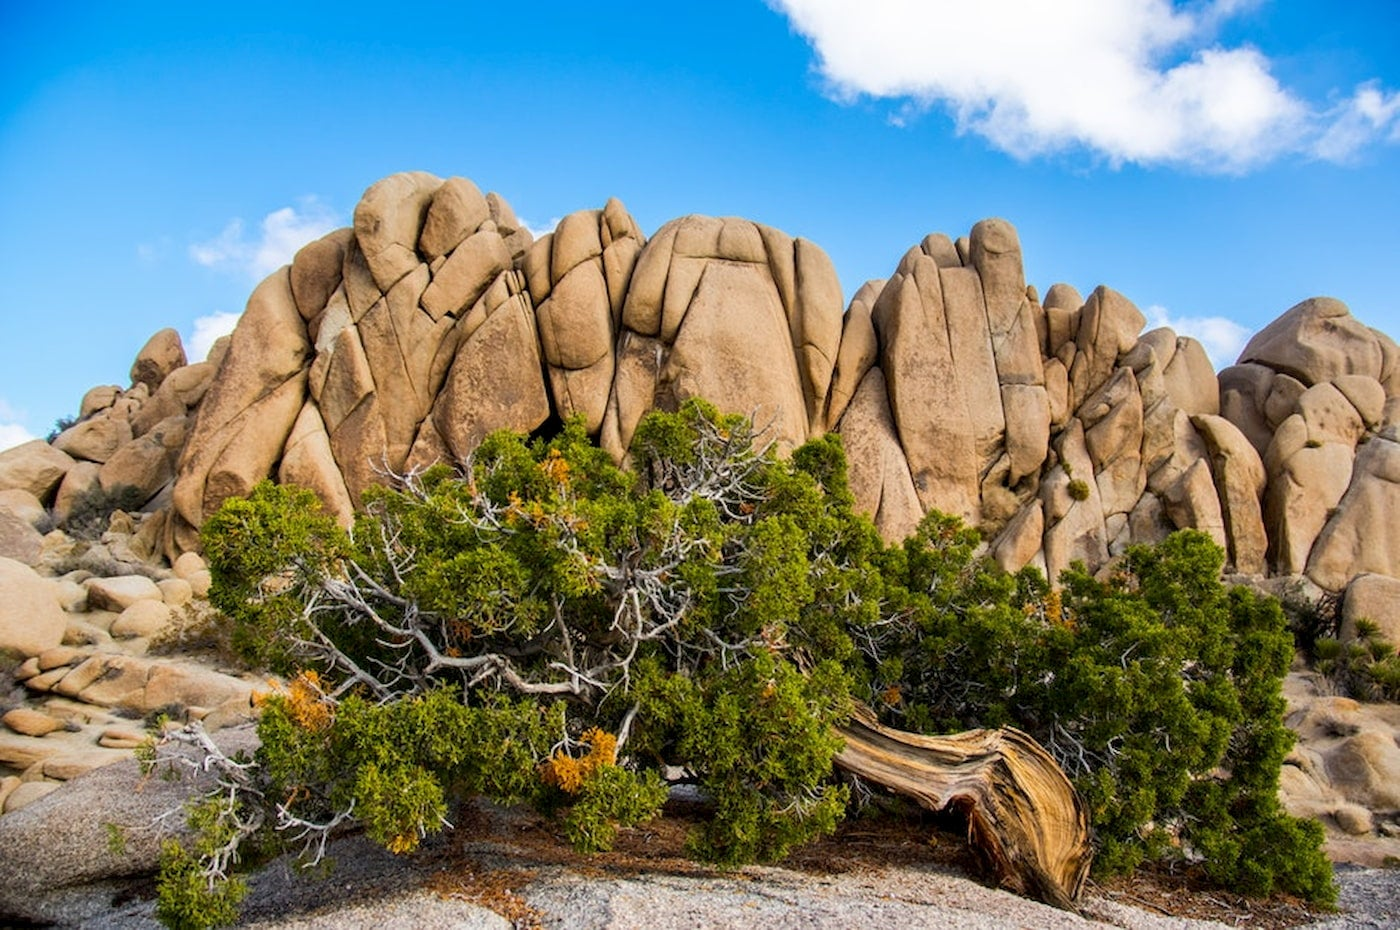 Rock formations of Joshua Tree against a blue sky.